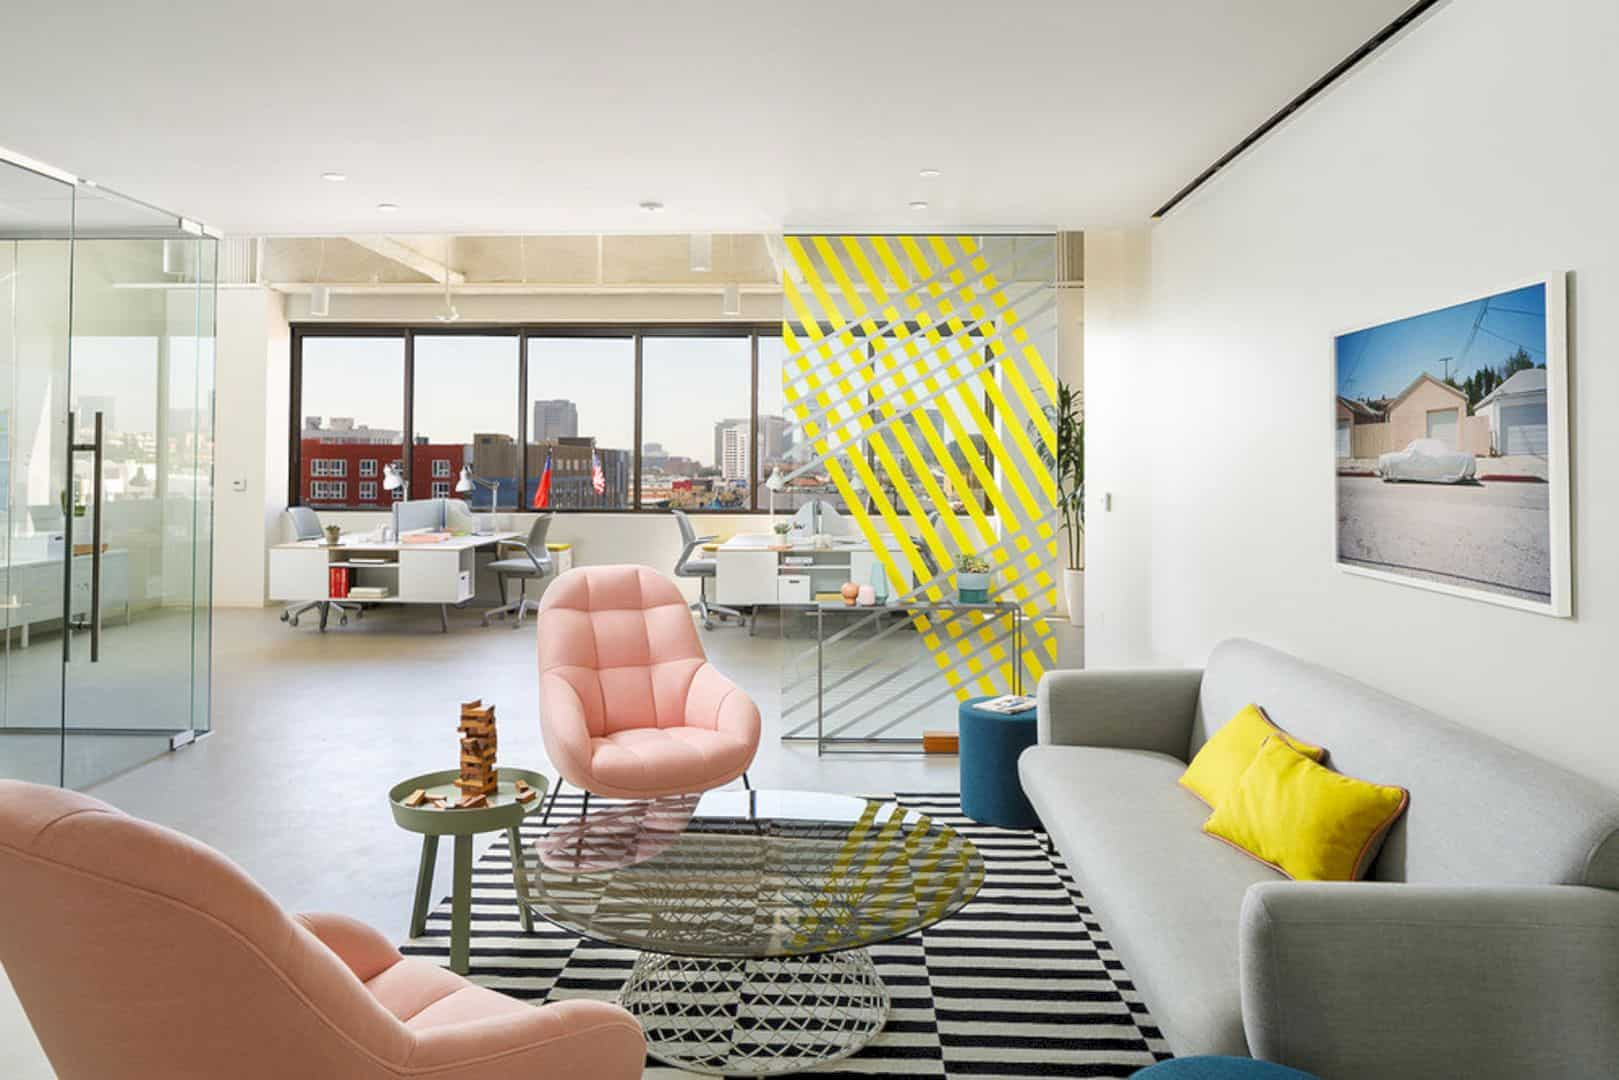 Pacshore Office: An Office Suite with Interesting Reflections from Color and Mirror